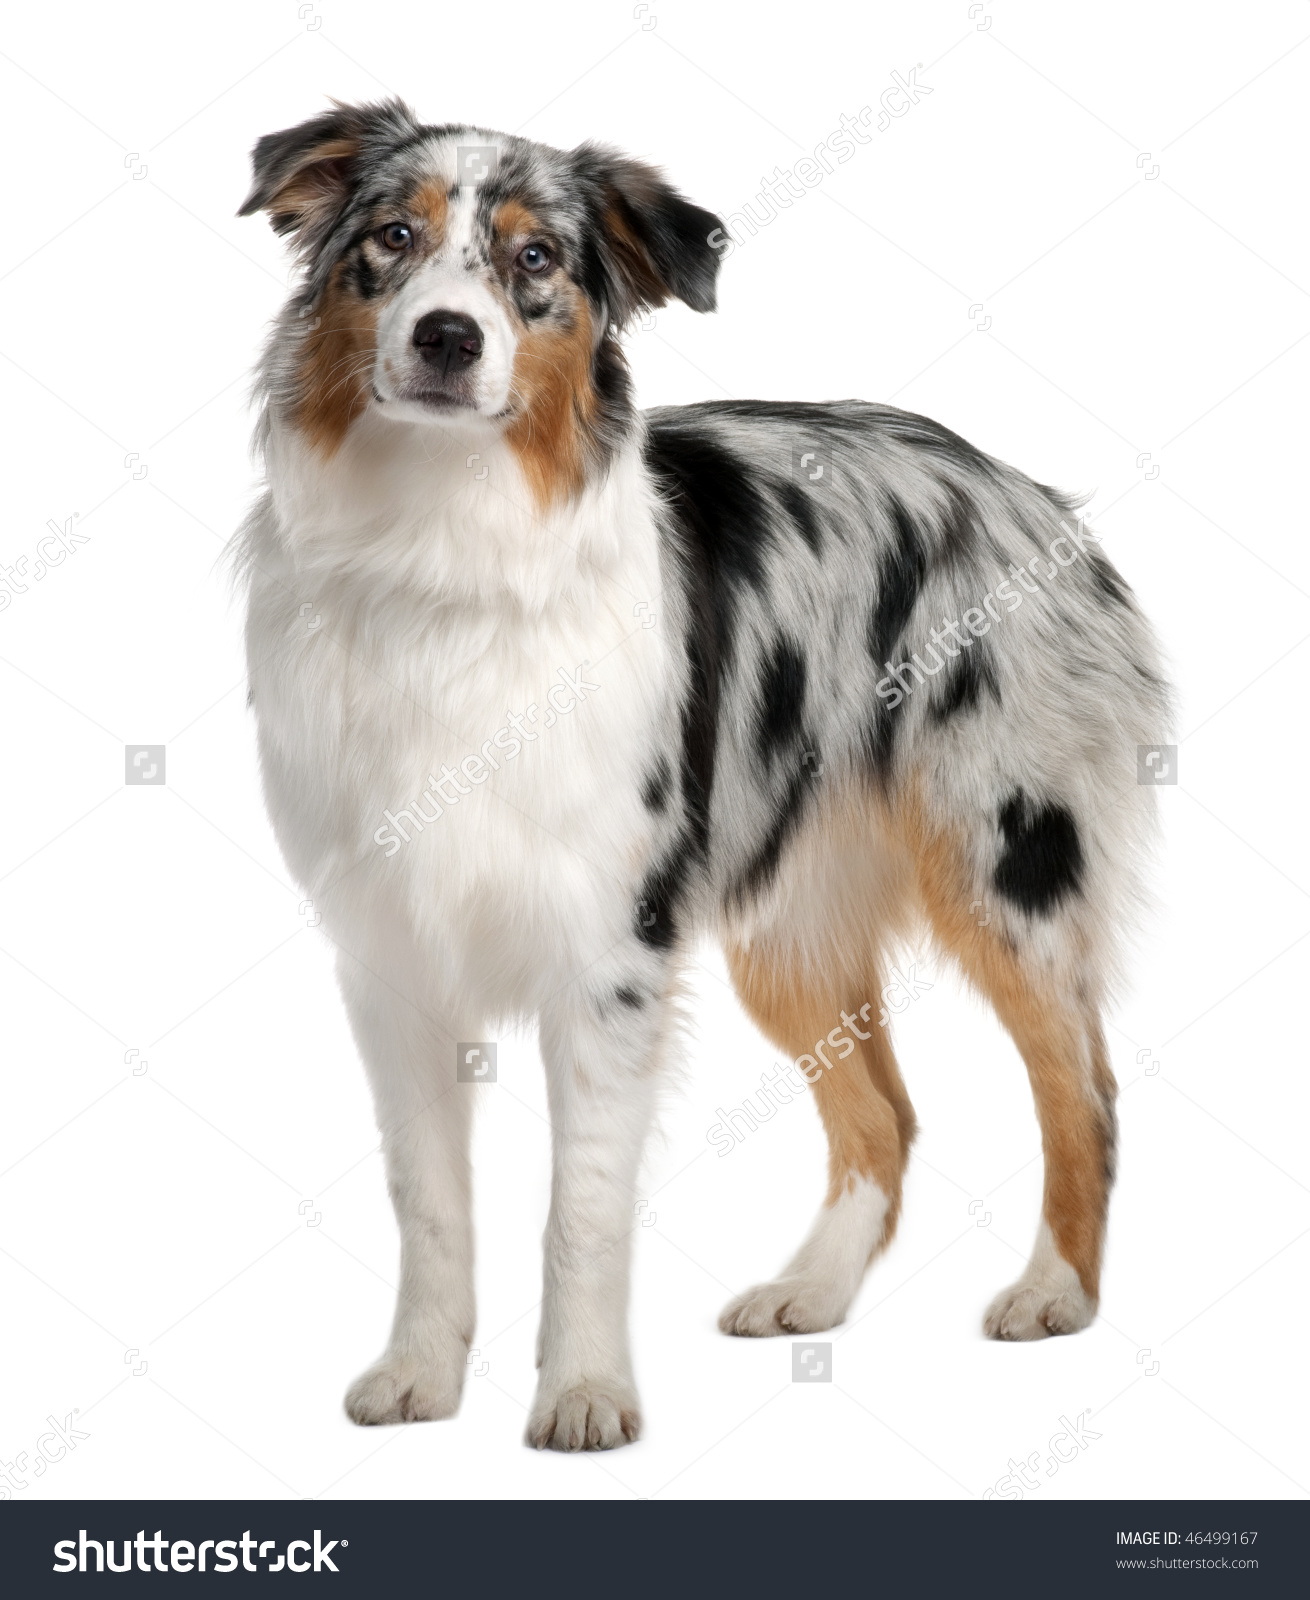 Australian Shepherd clipart #3, Download drawings